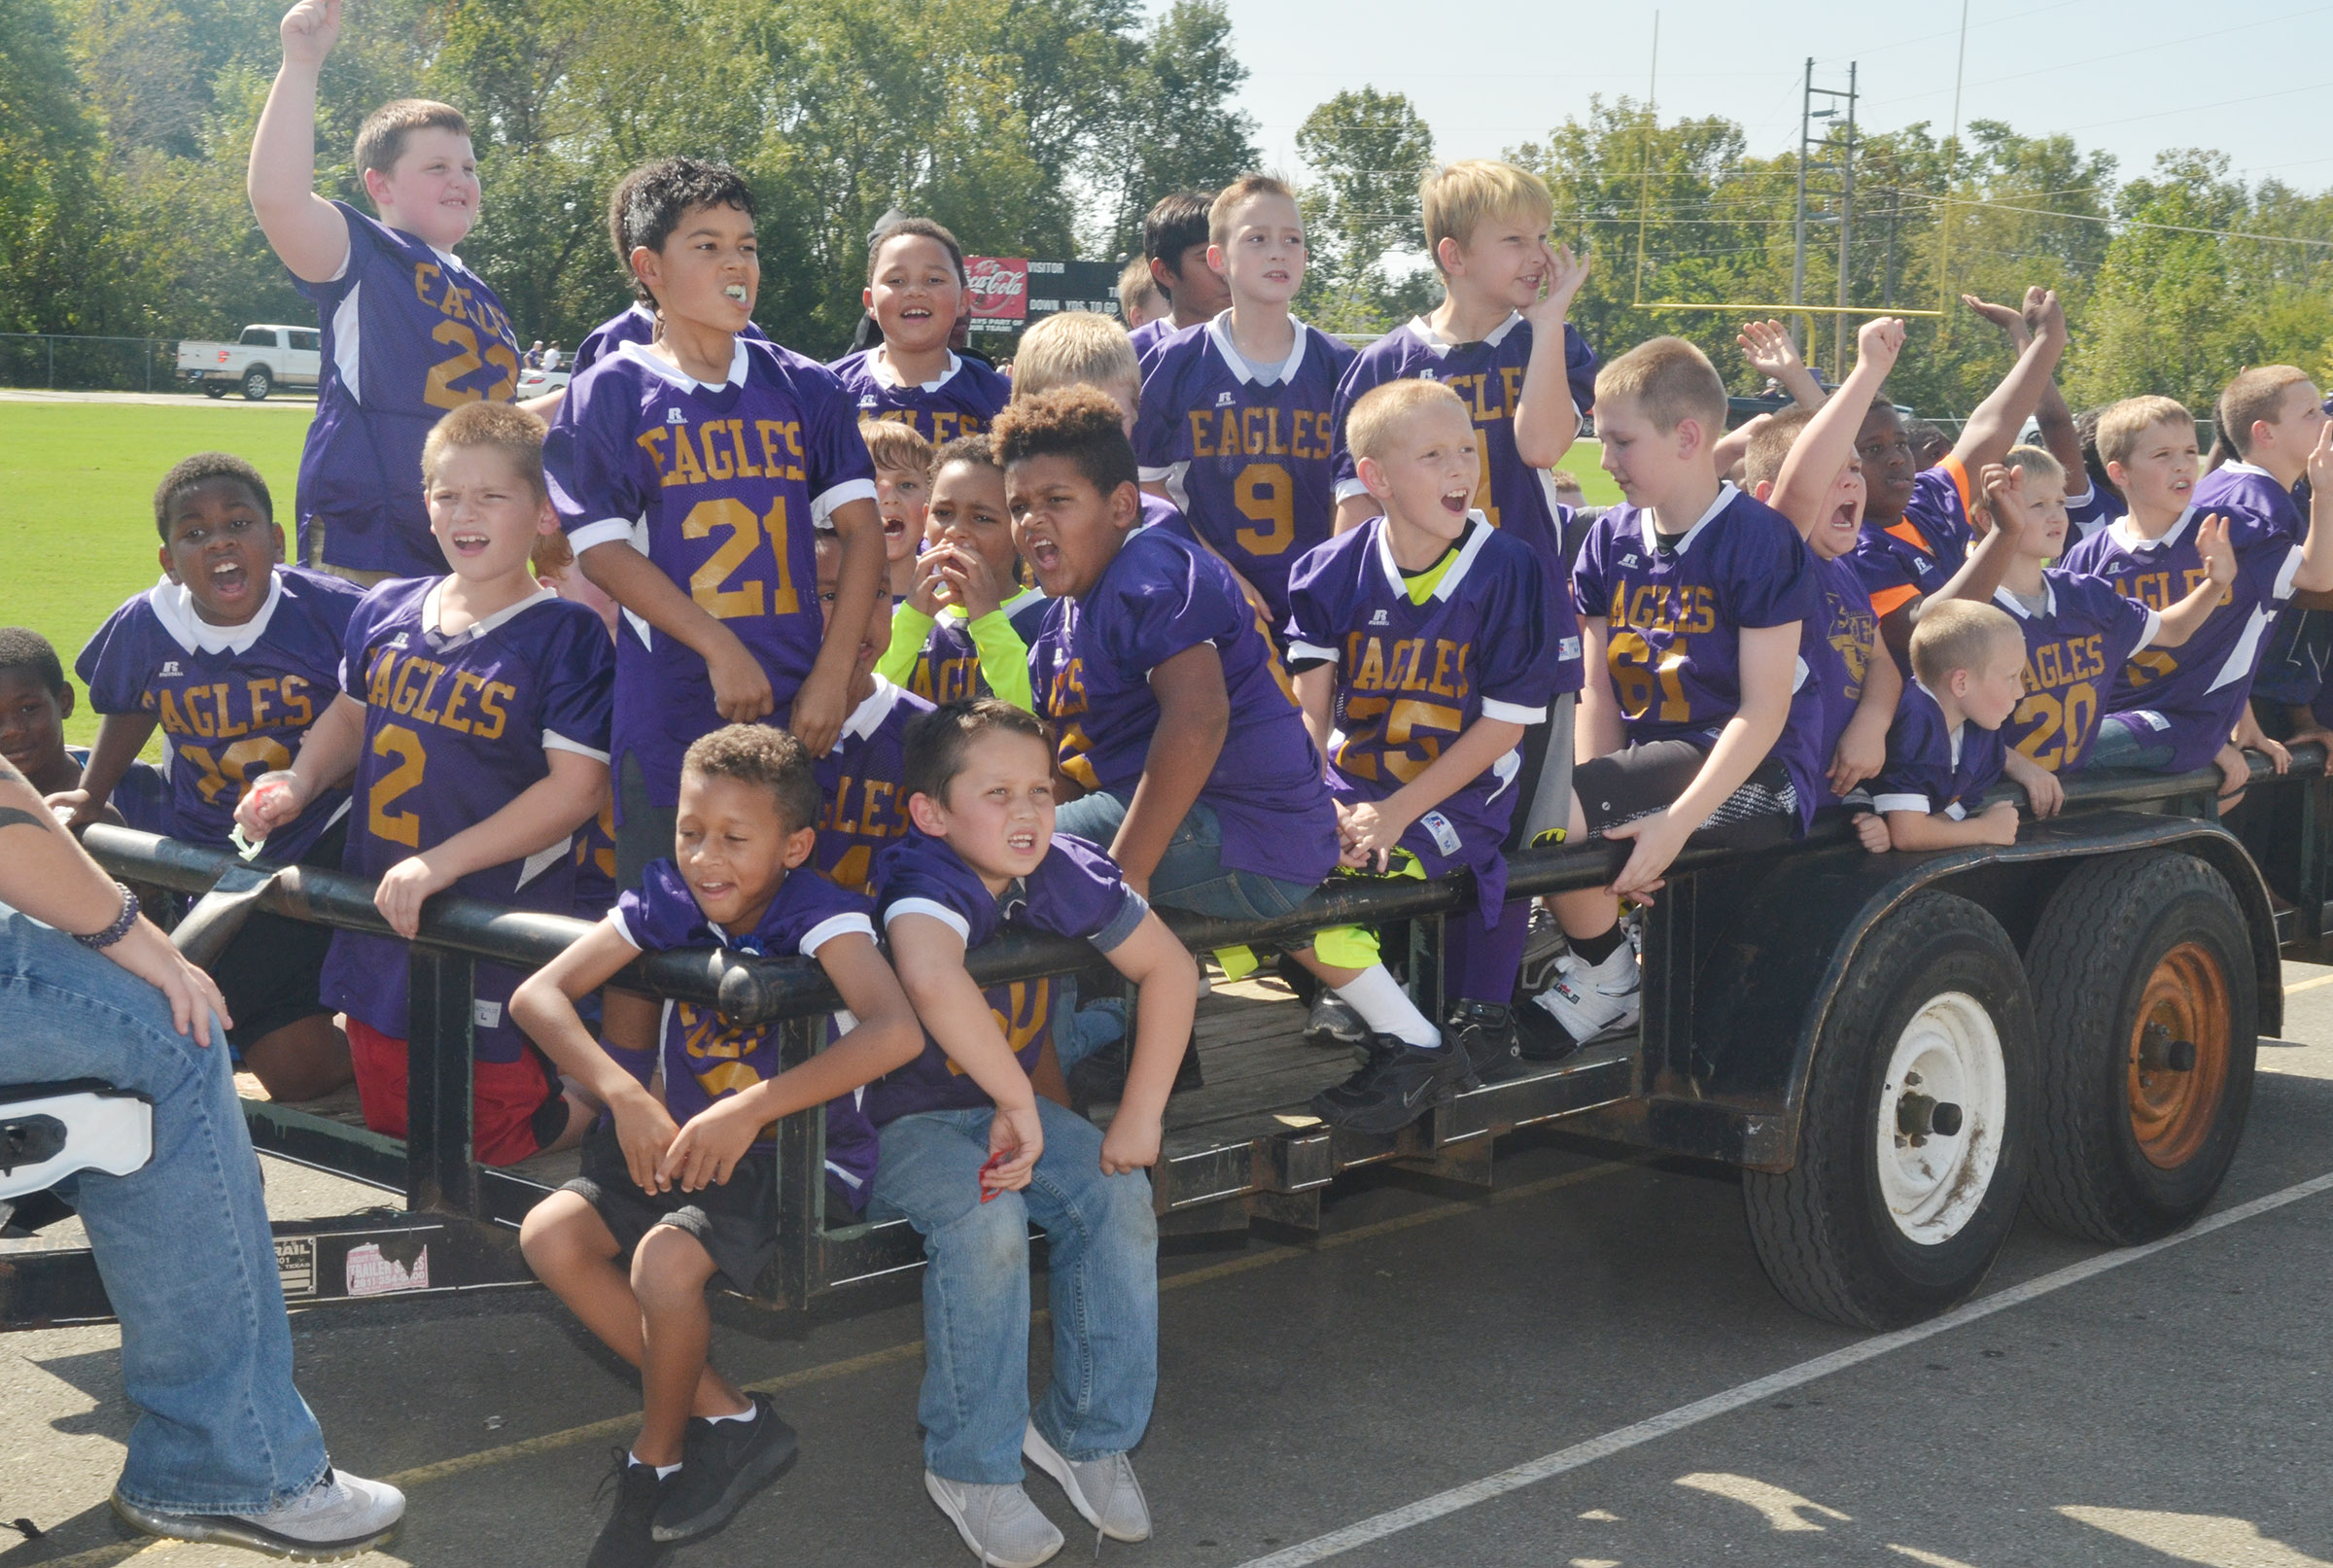 Campbellsville youth football players ride in the parade.